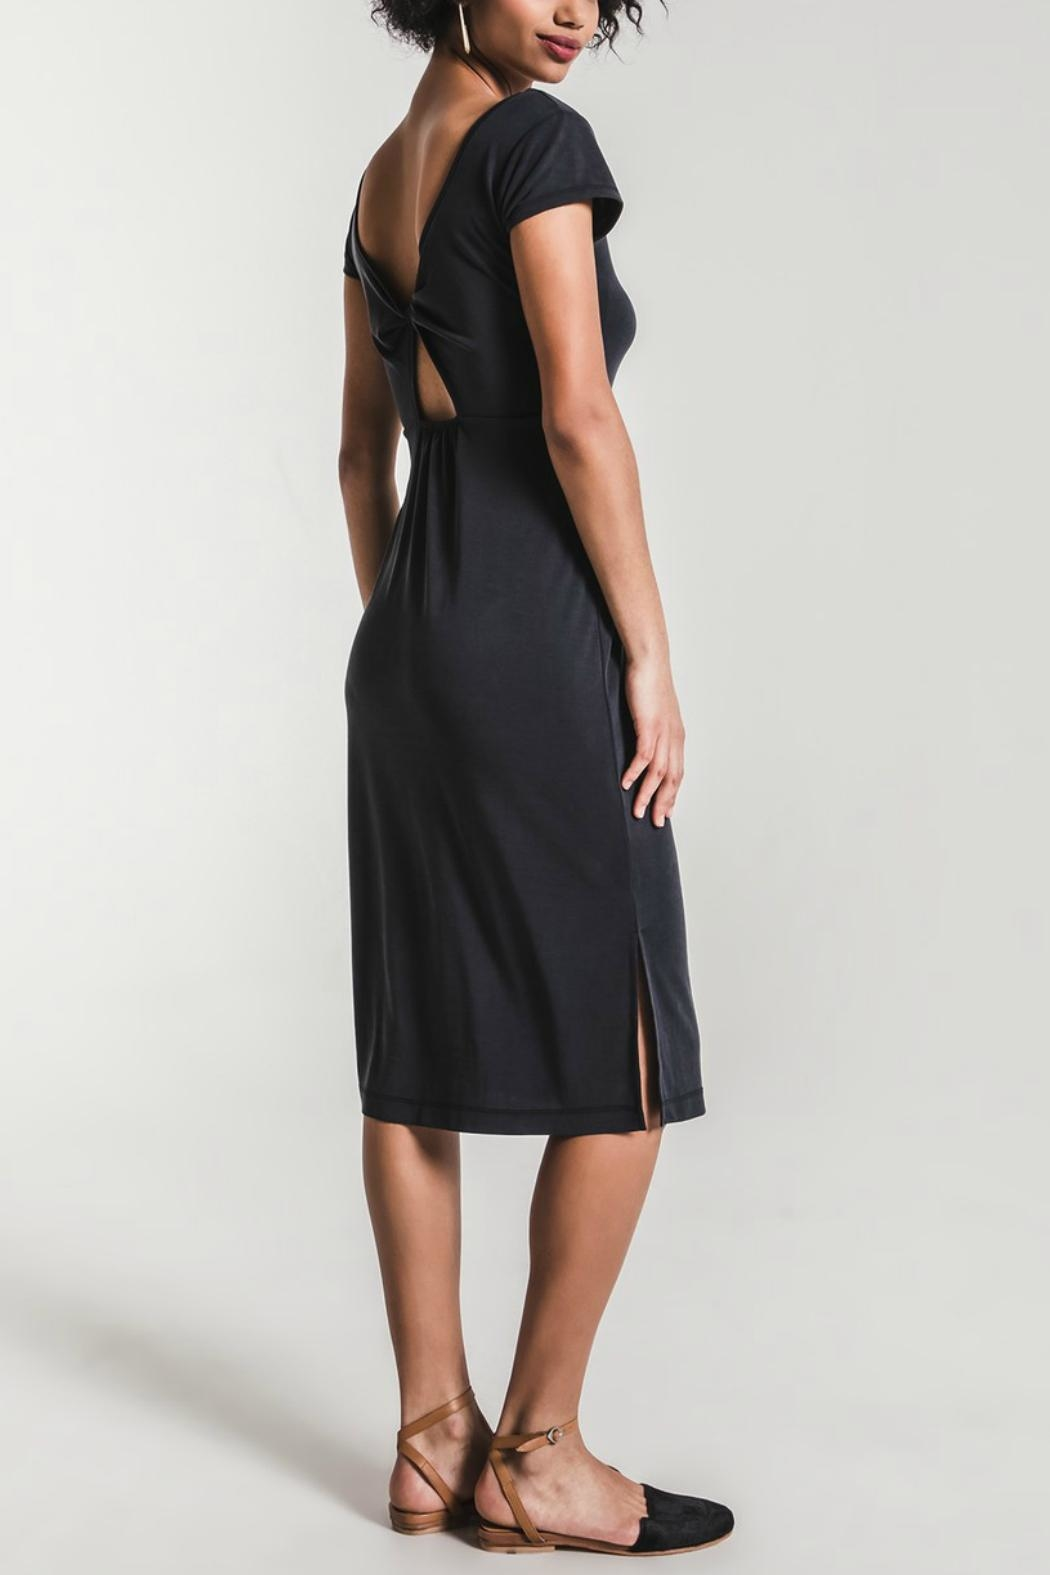 z supply The Muse Dress - Front Full Image